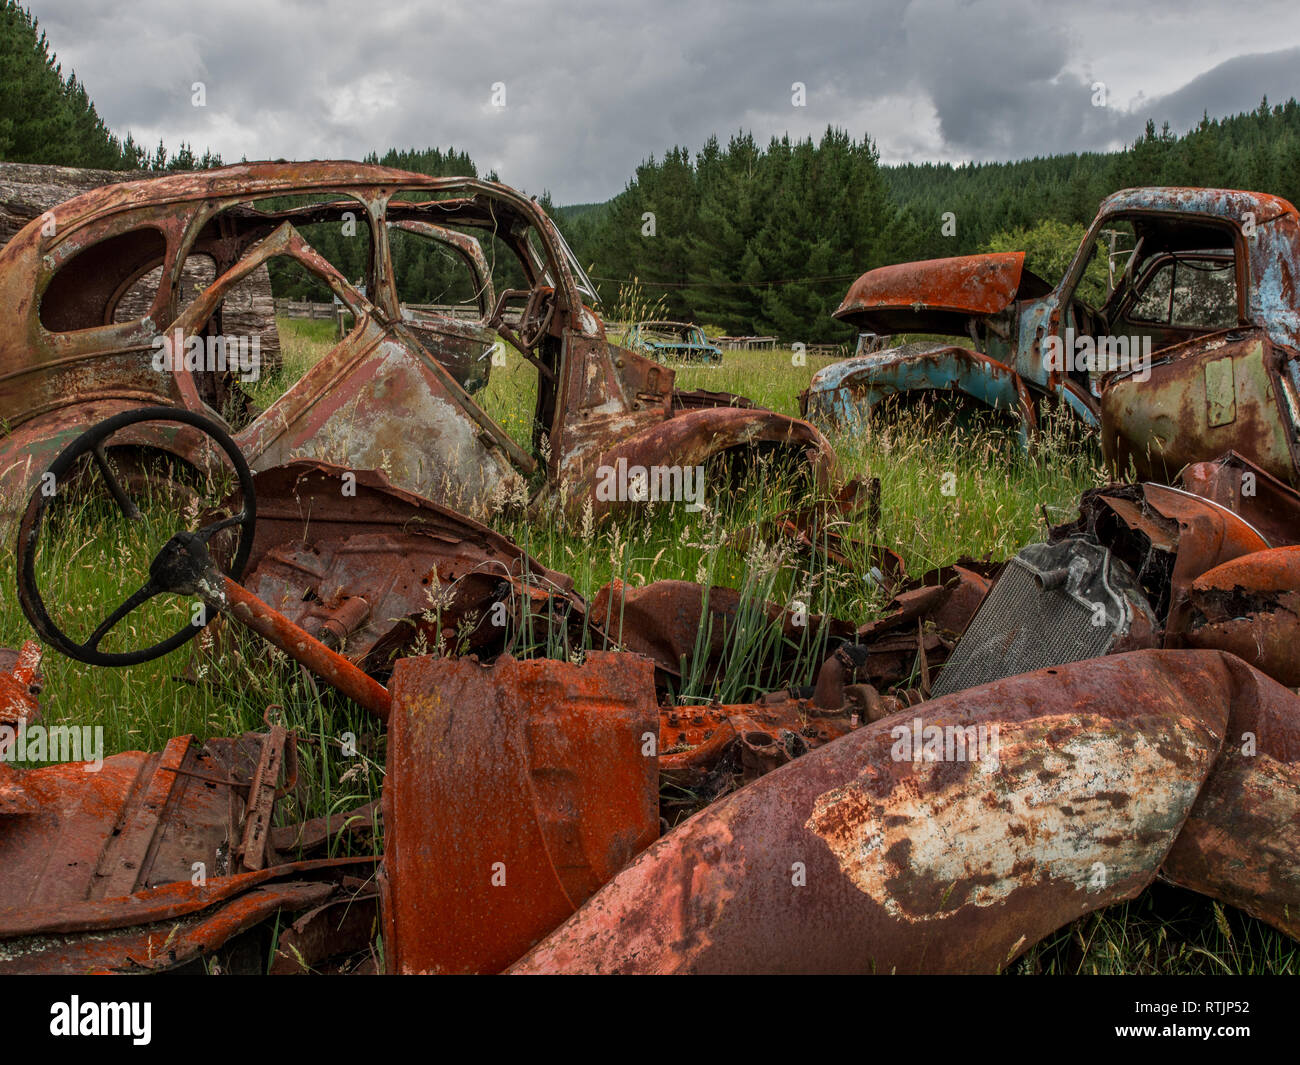 Wrecked vehicles, abandoned rusty decaying into long grass,  Endeans Mill, Waimiha, Ongarue, King Country, New Zealand - Stock Image